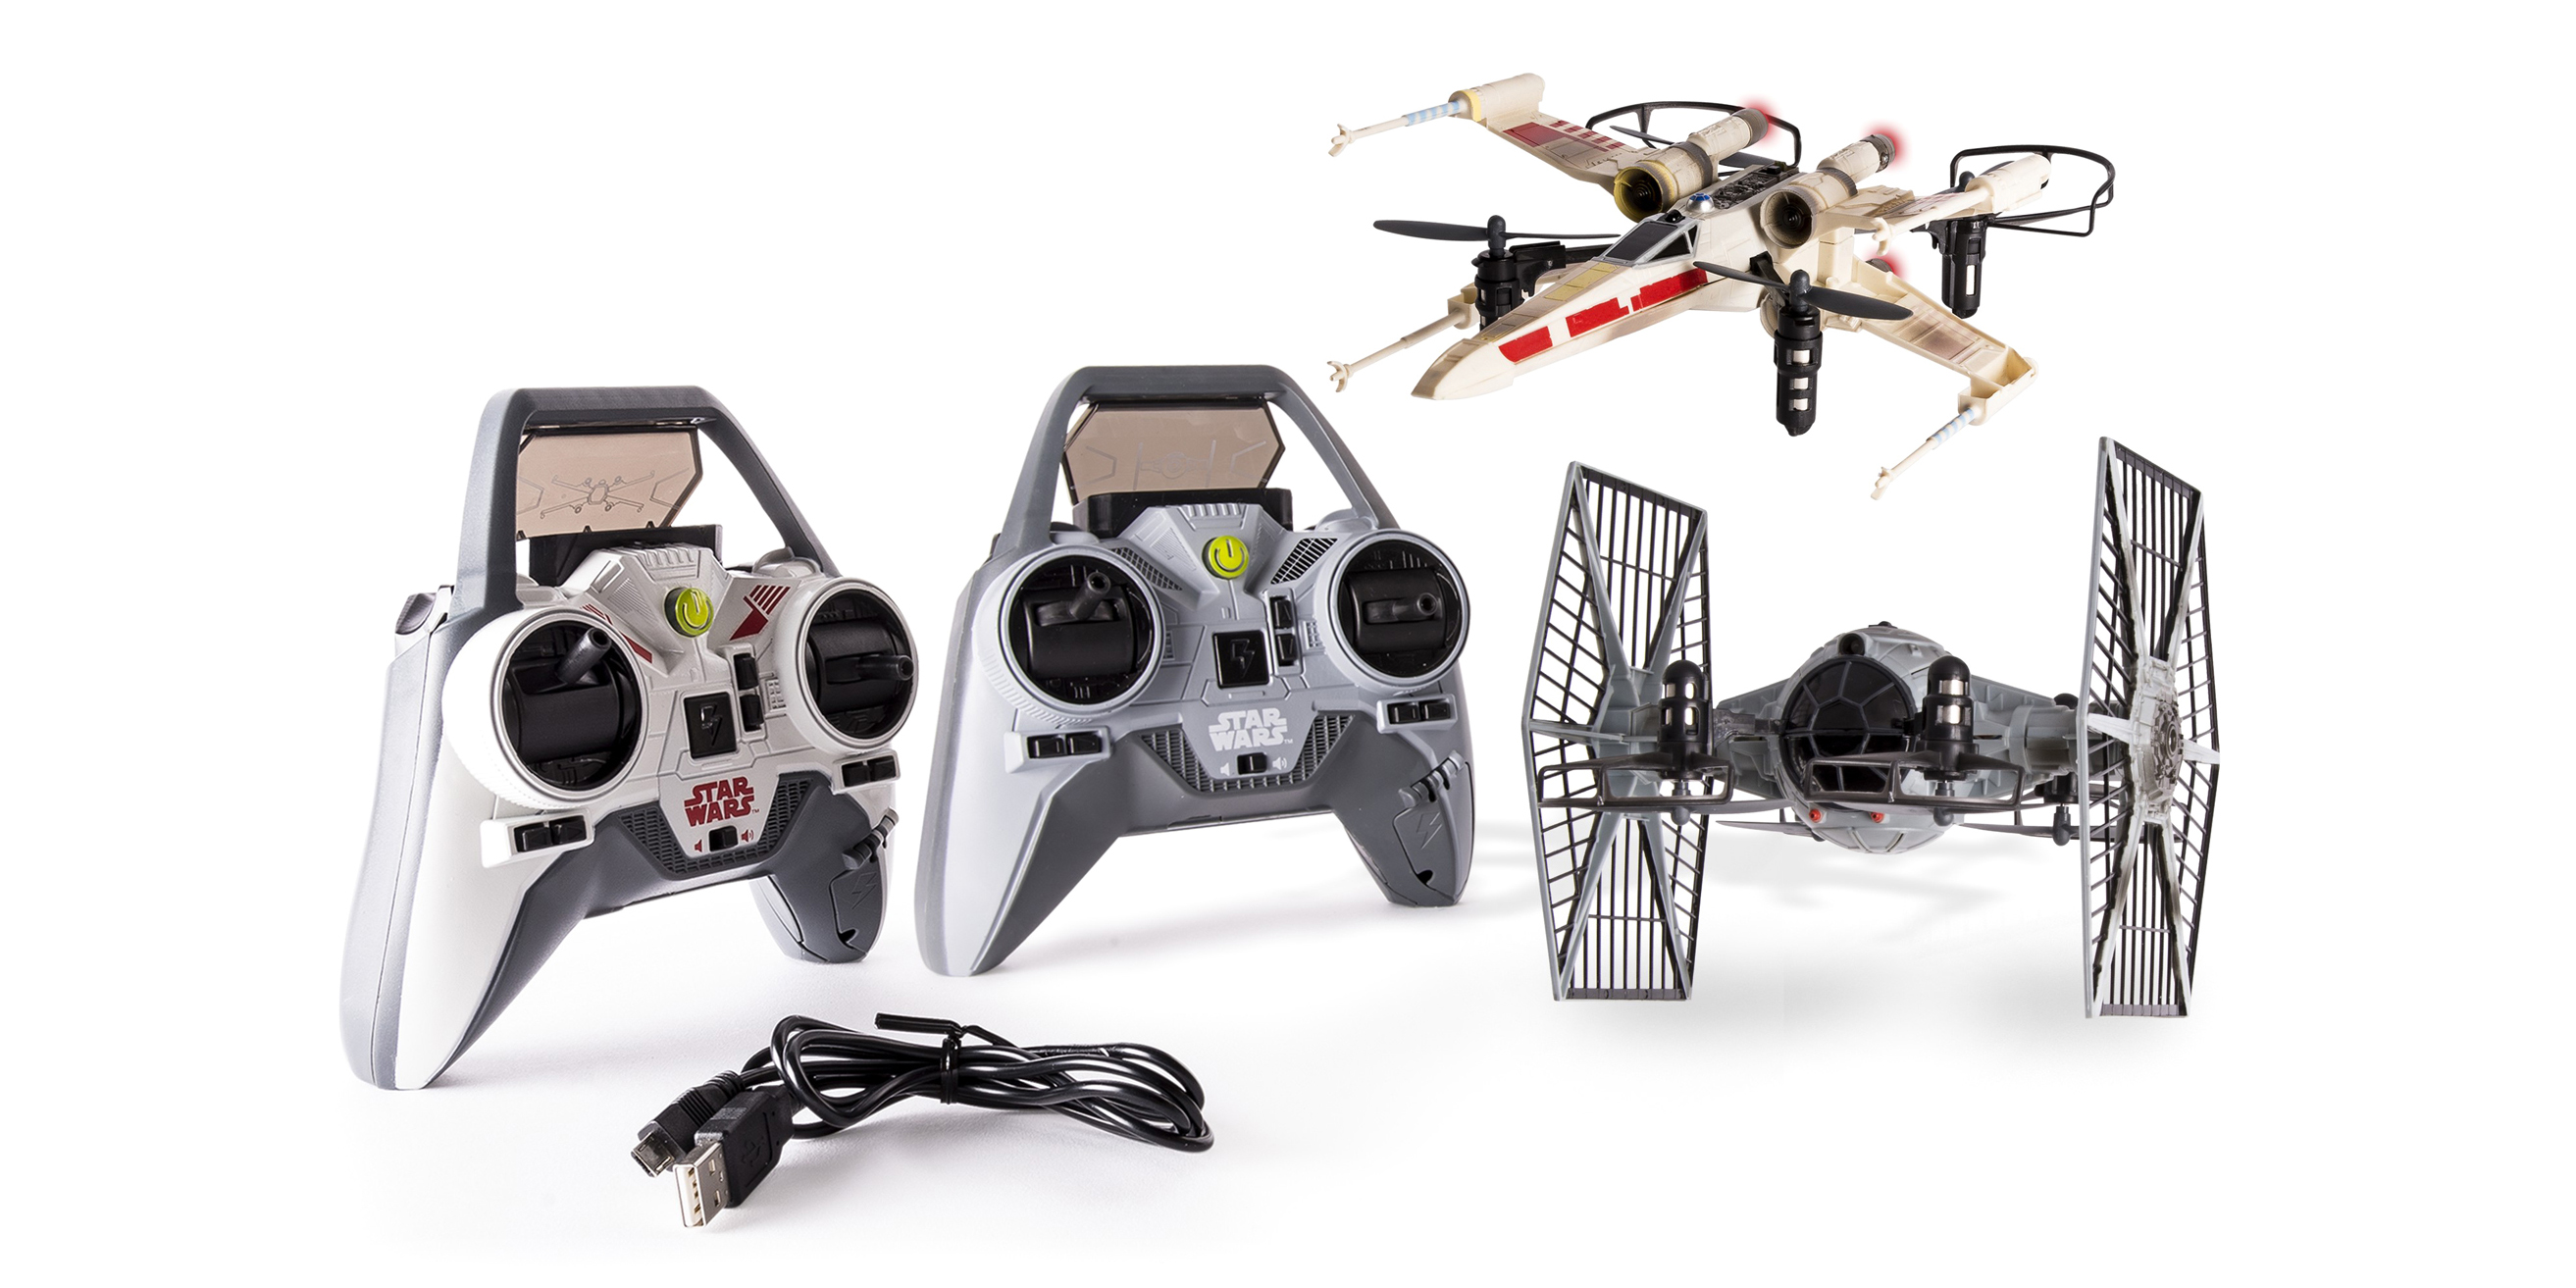 spin-master-star-wars-drone